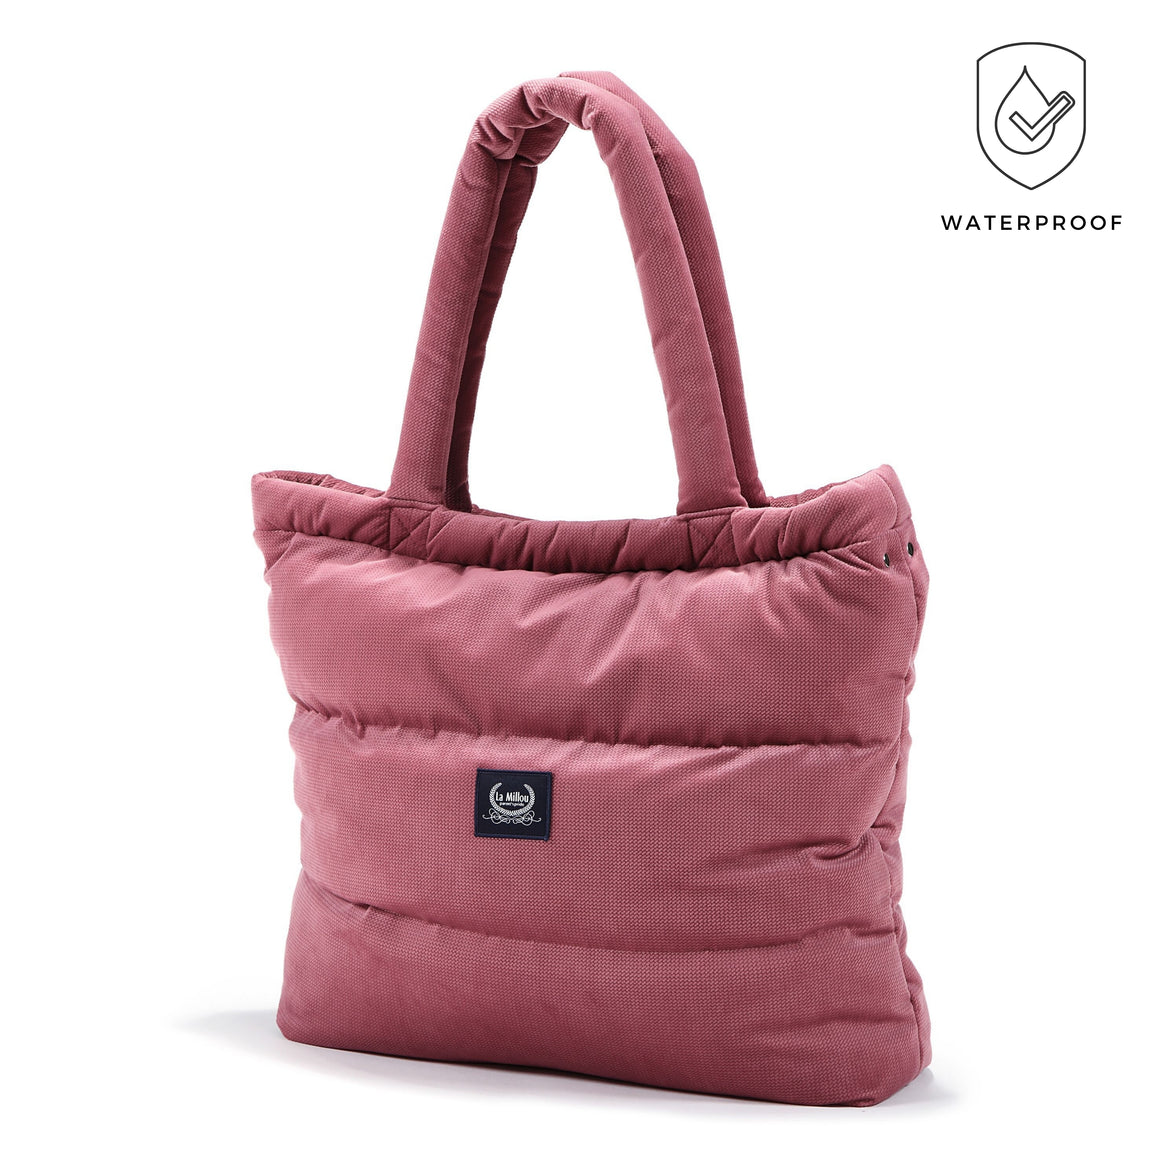 ASPEN WINTERPROOF SHOPPER BAG talvilaukku - Velvet Mulberry